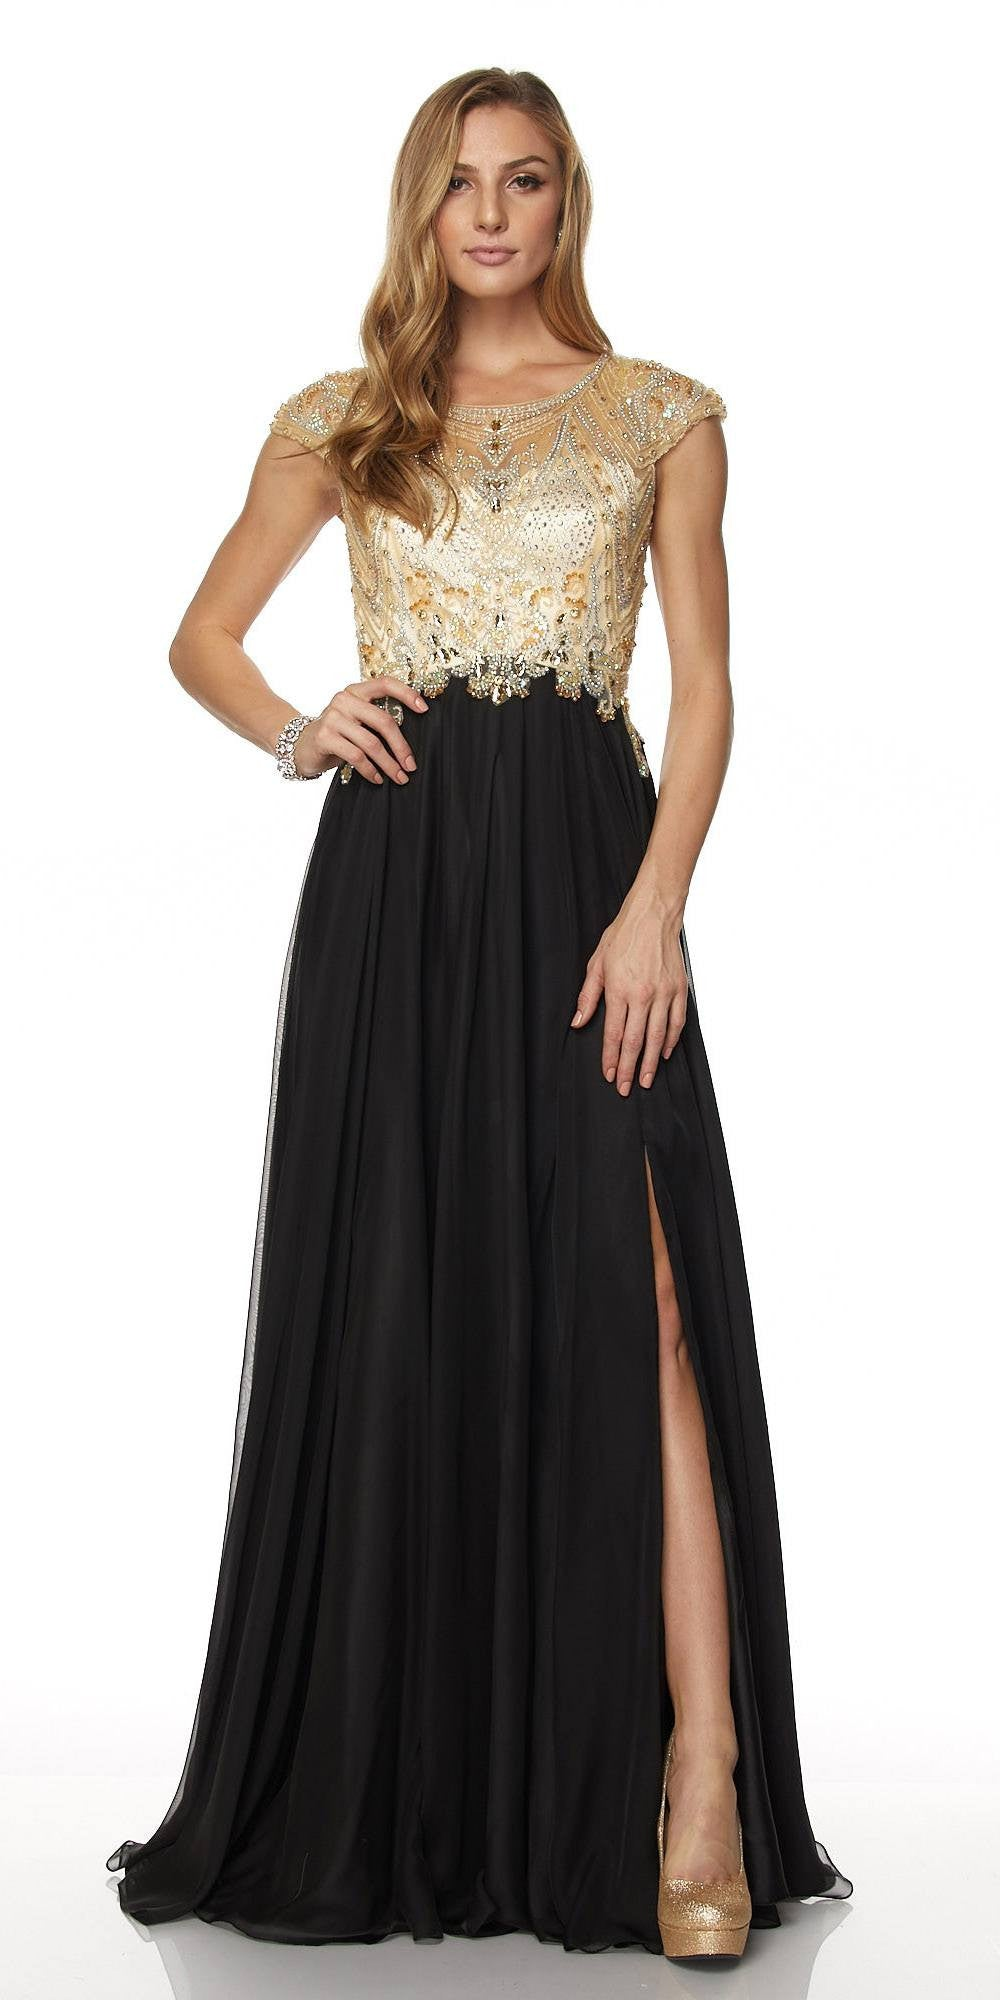 Juliet 636 Black Beaded Bodice Cap Sleeve Prom Gown with Slit and ...